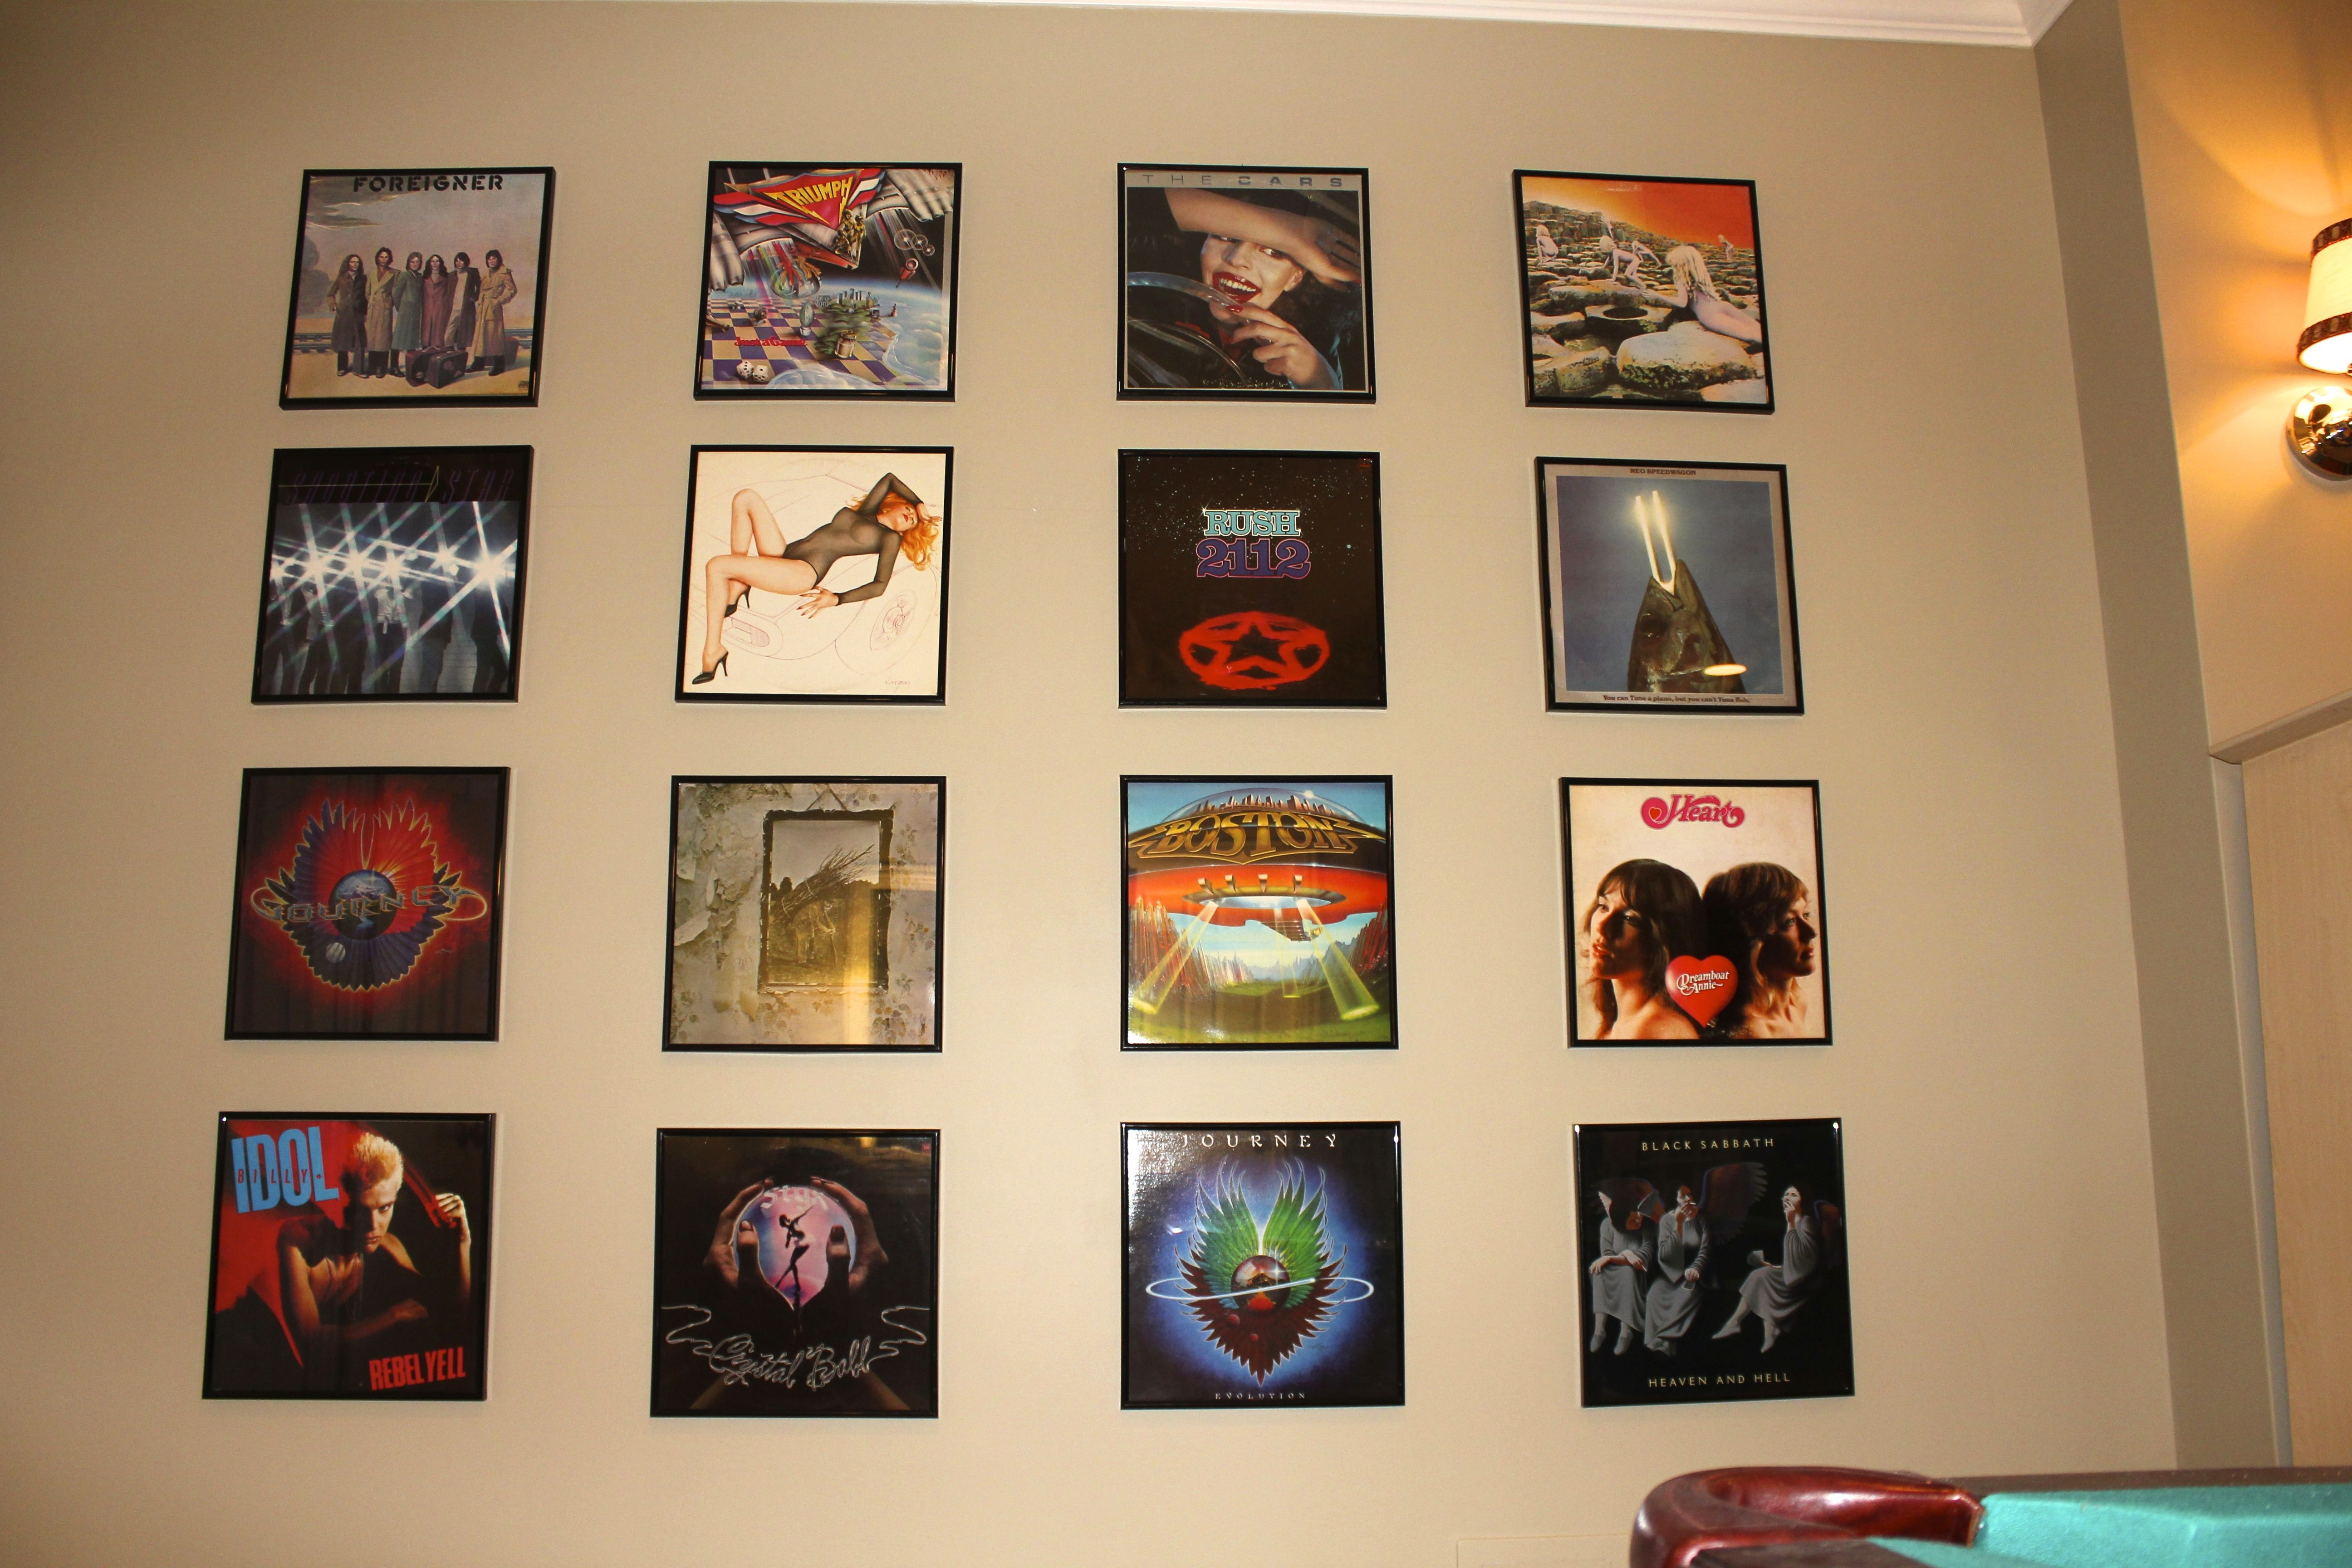 Classic Rock Album Wall Another Shot Lower Angle